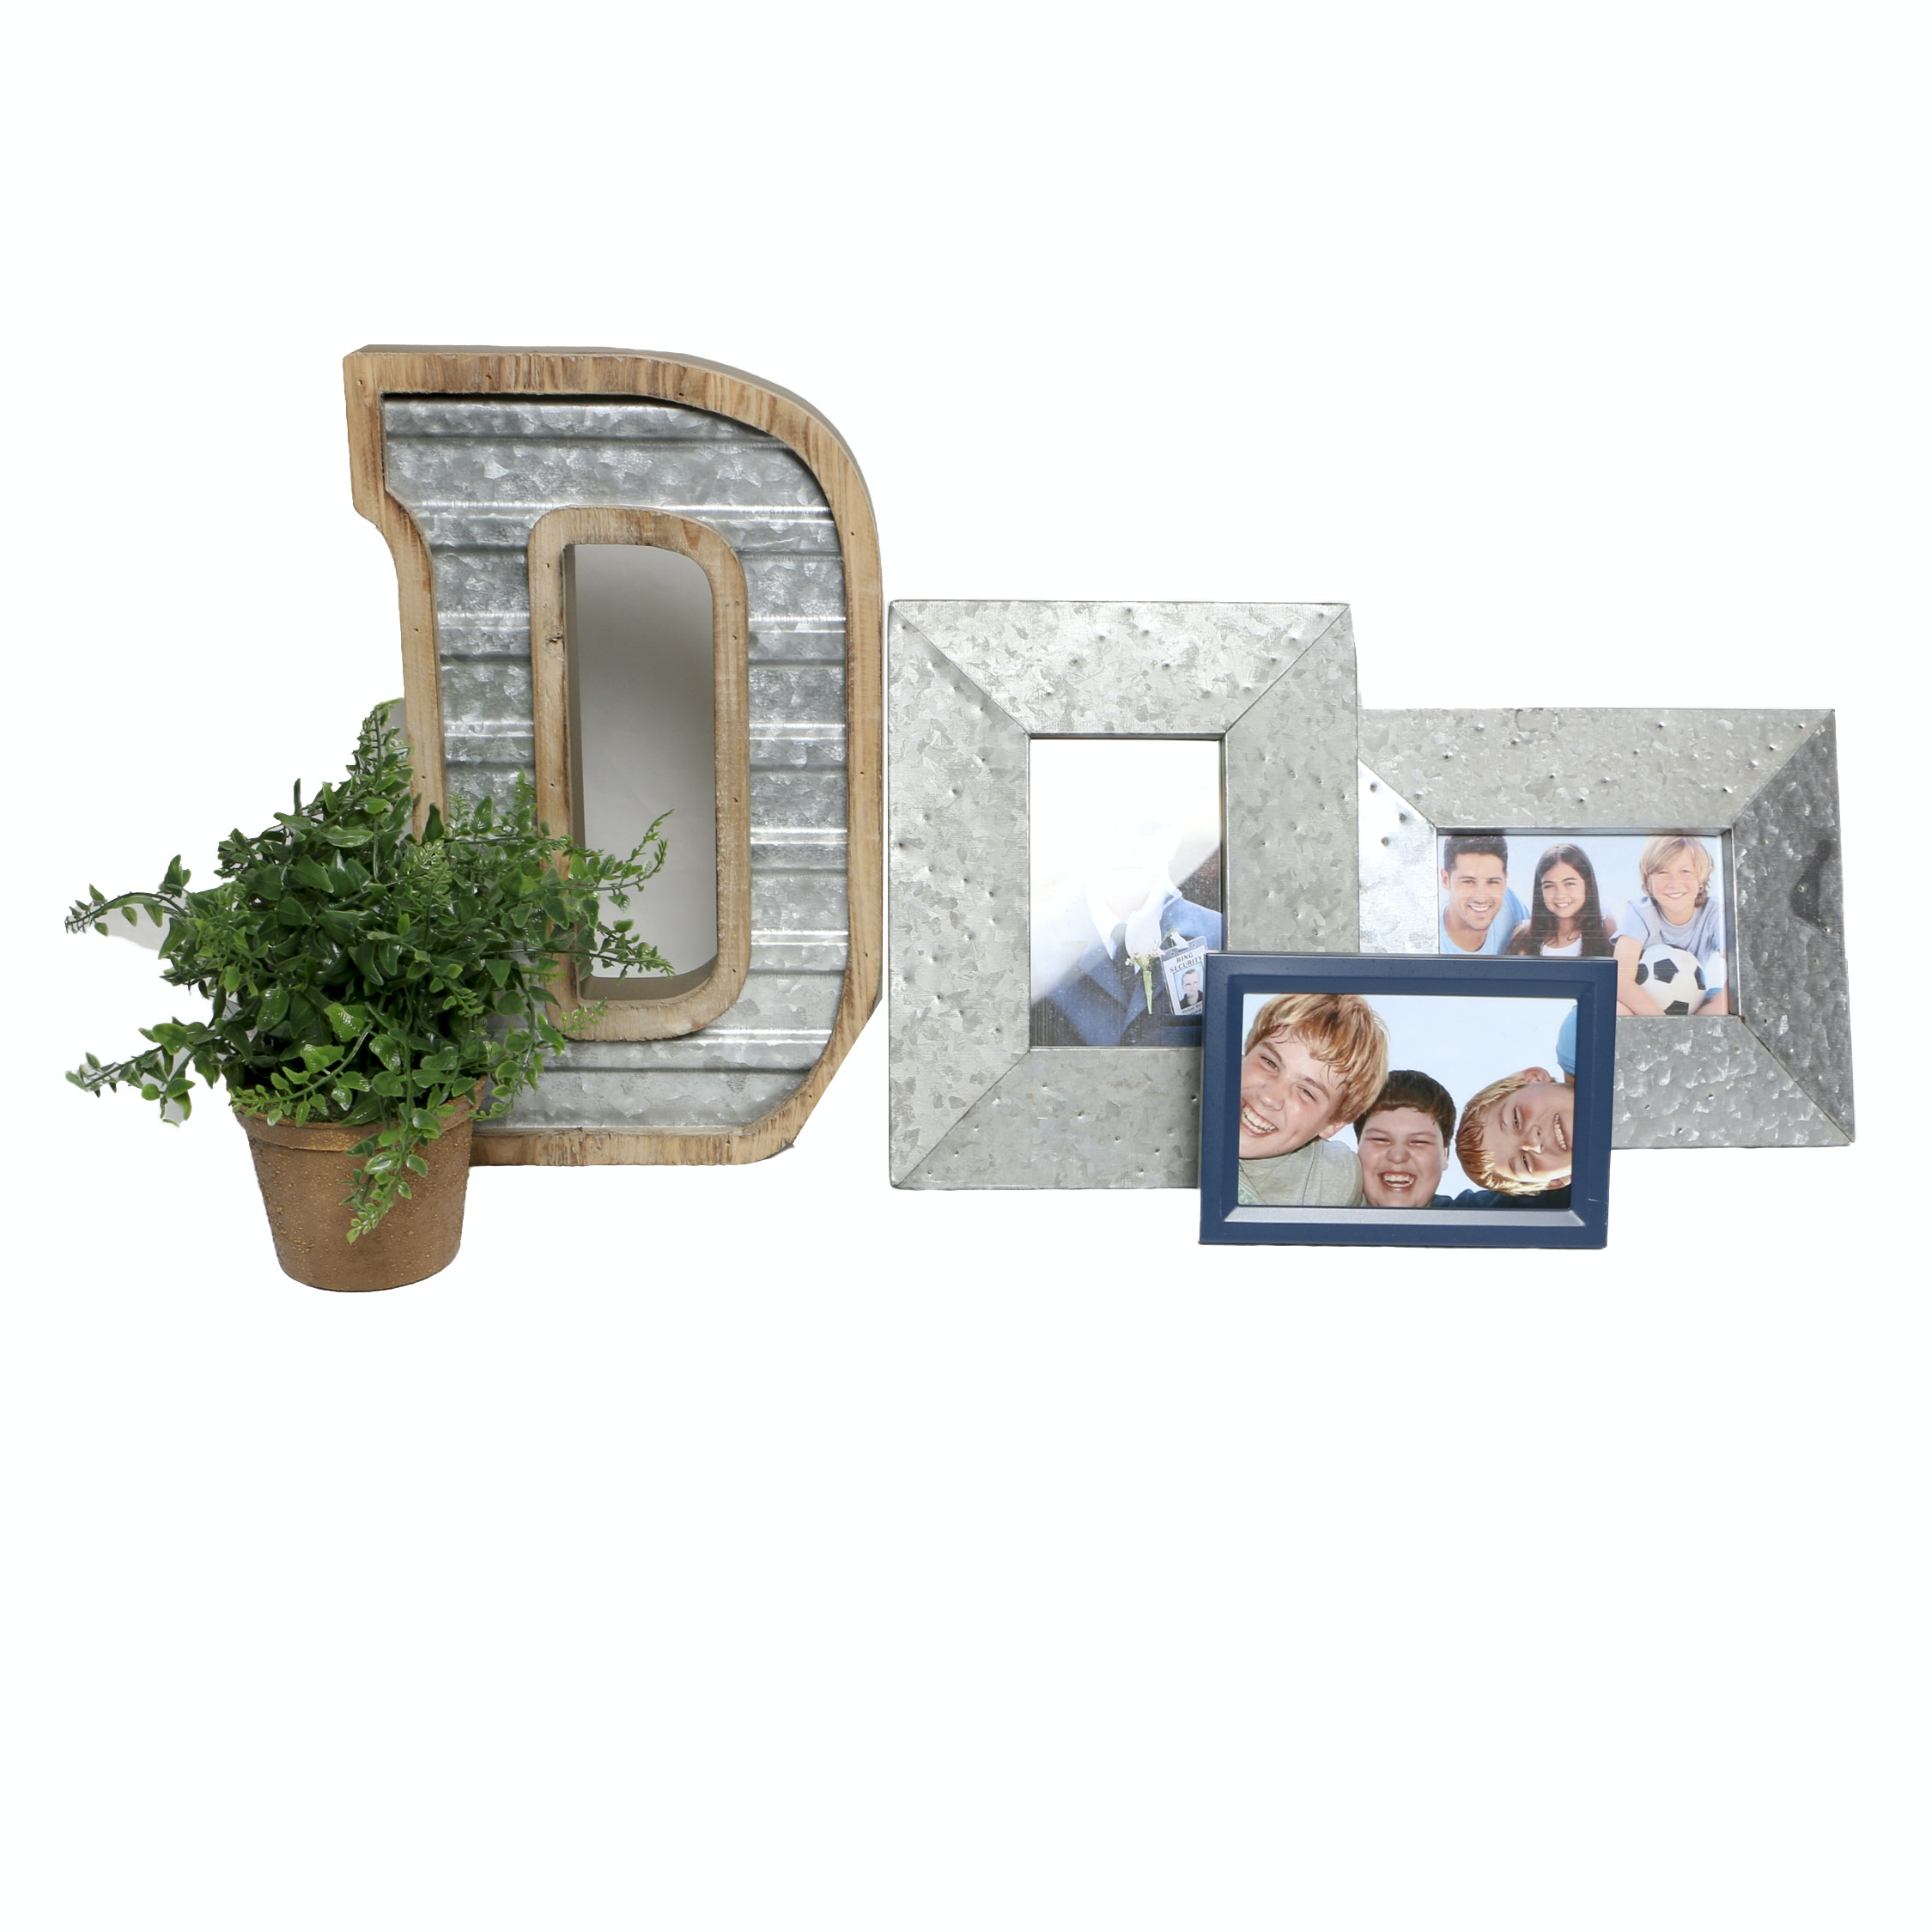 Tabletop Picture Frames and Other Decor